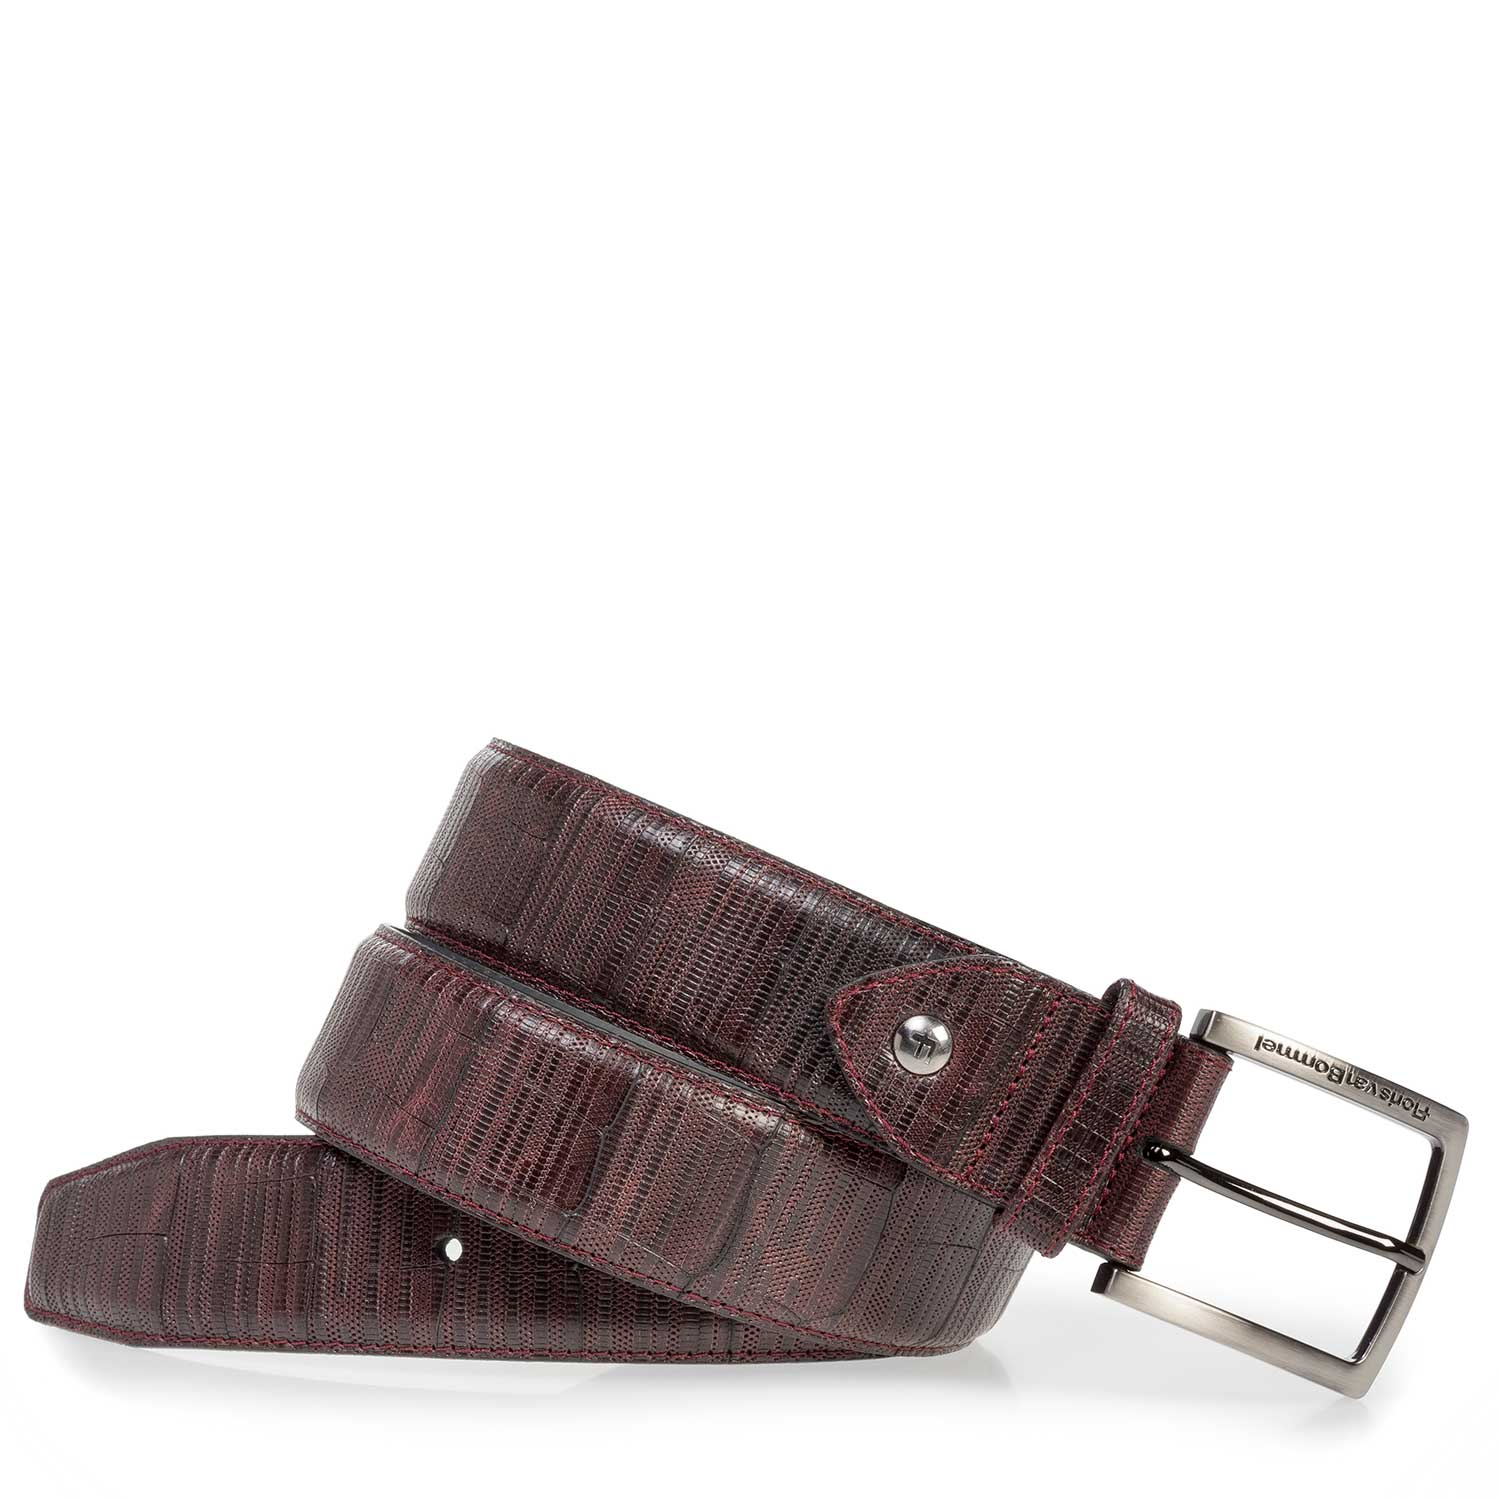 75202/03 - Burgundy red leather belt with print